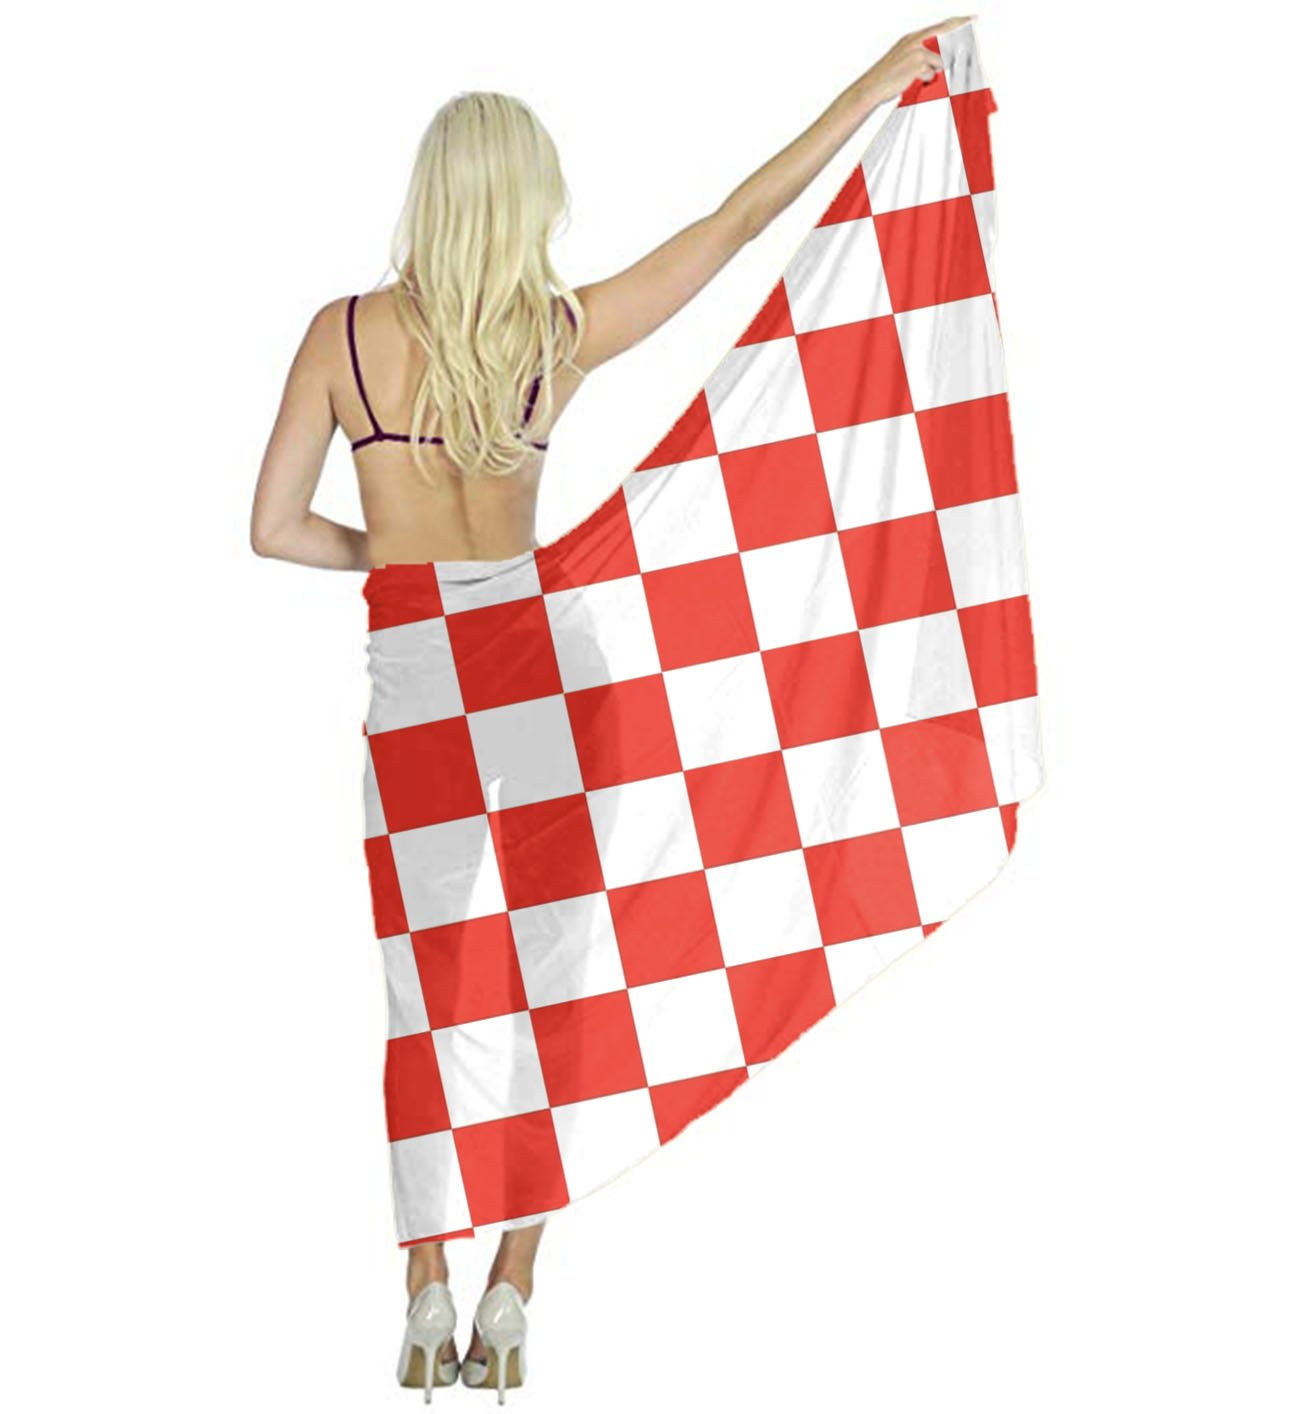 Women Scarf Large Red And White Checkered Shawl Wraps for Evening Dress, Wedding Party